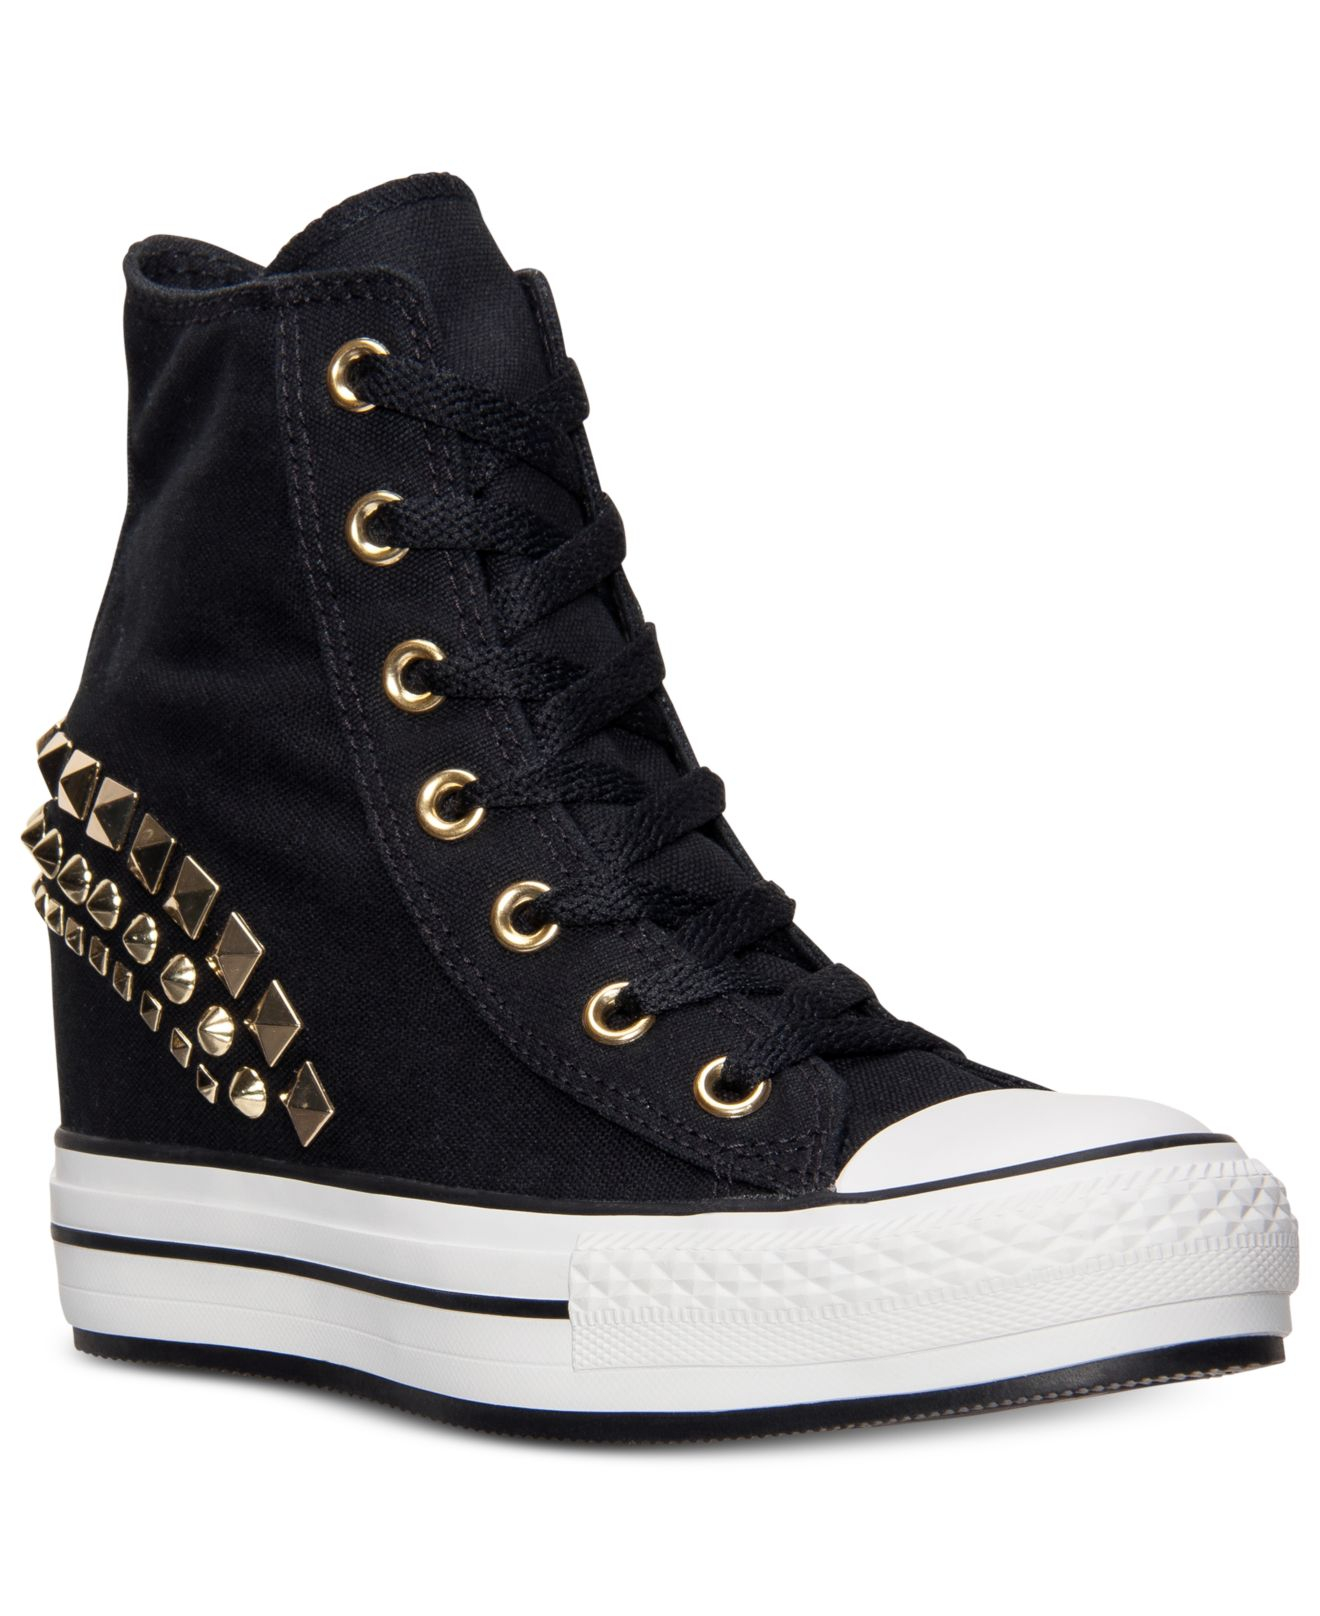 e7707557ebee Converse Chuck Taylor All Star Hi Platform Sneakers Shoes Black ...